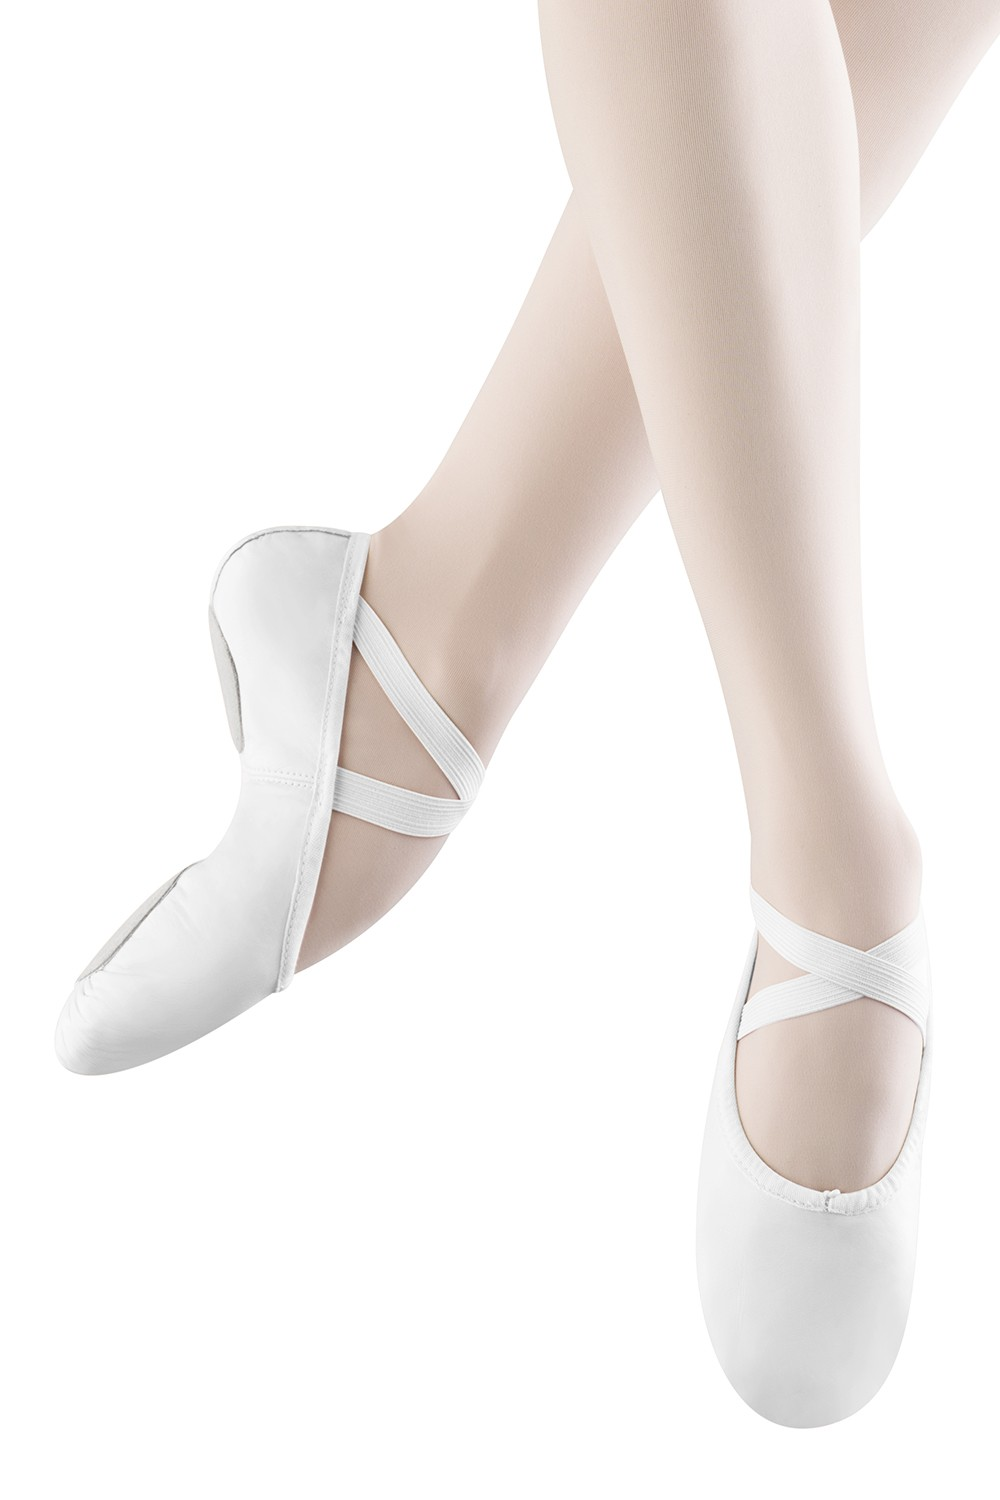 Prolite Ii Leather - Mens Men's Ballet Shoes